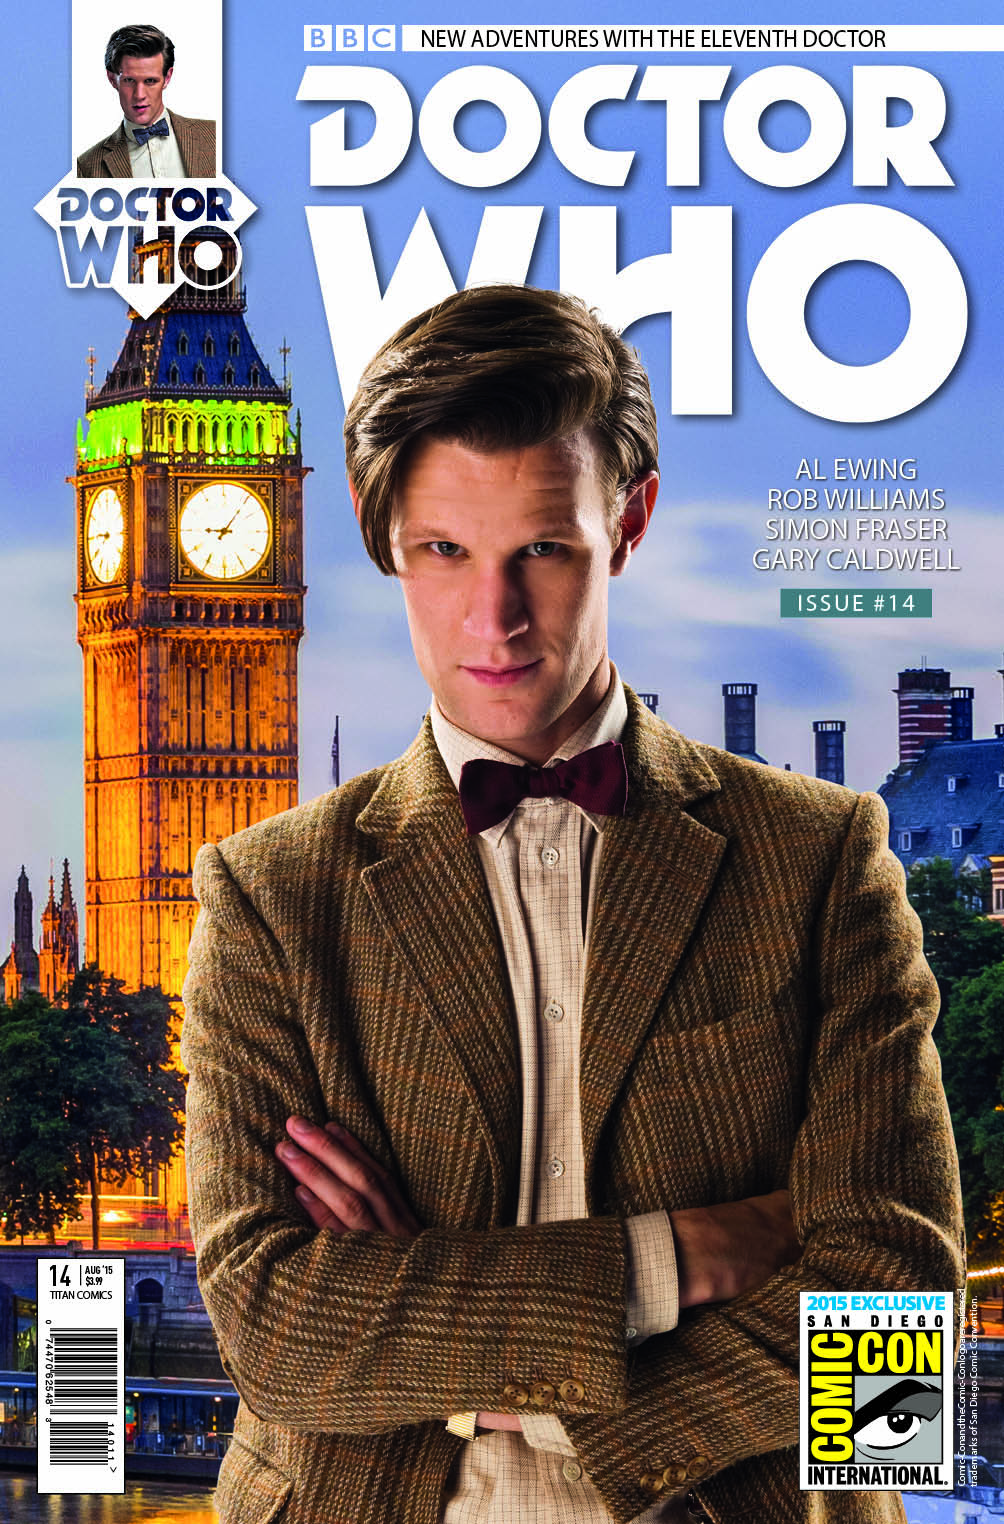 Doctor Who: Eleventh Doctor #14 (SDCC Exclusive Cover) (Credit: Titan Comics)